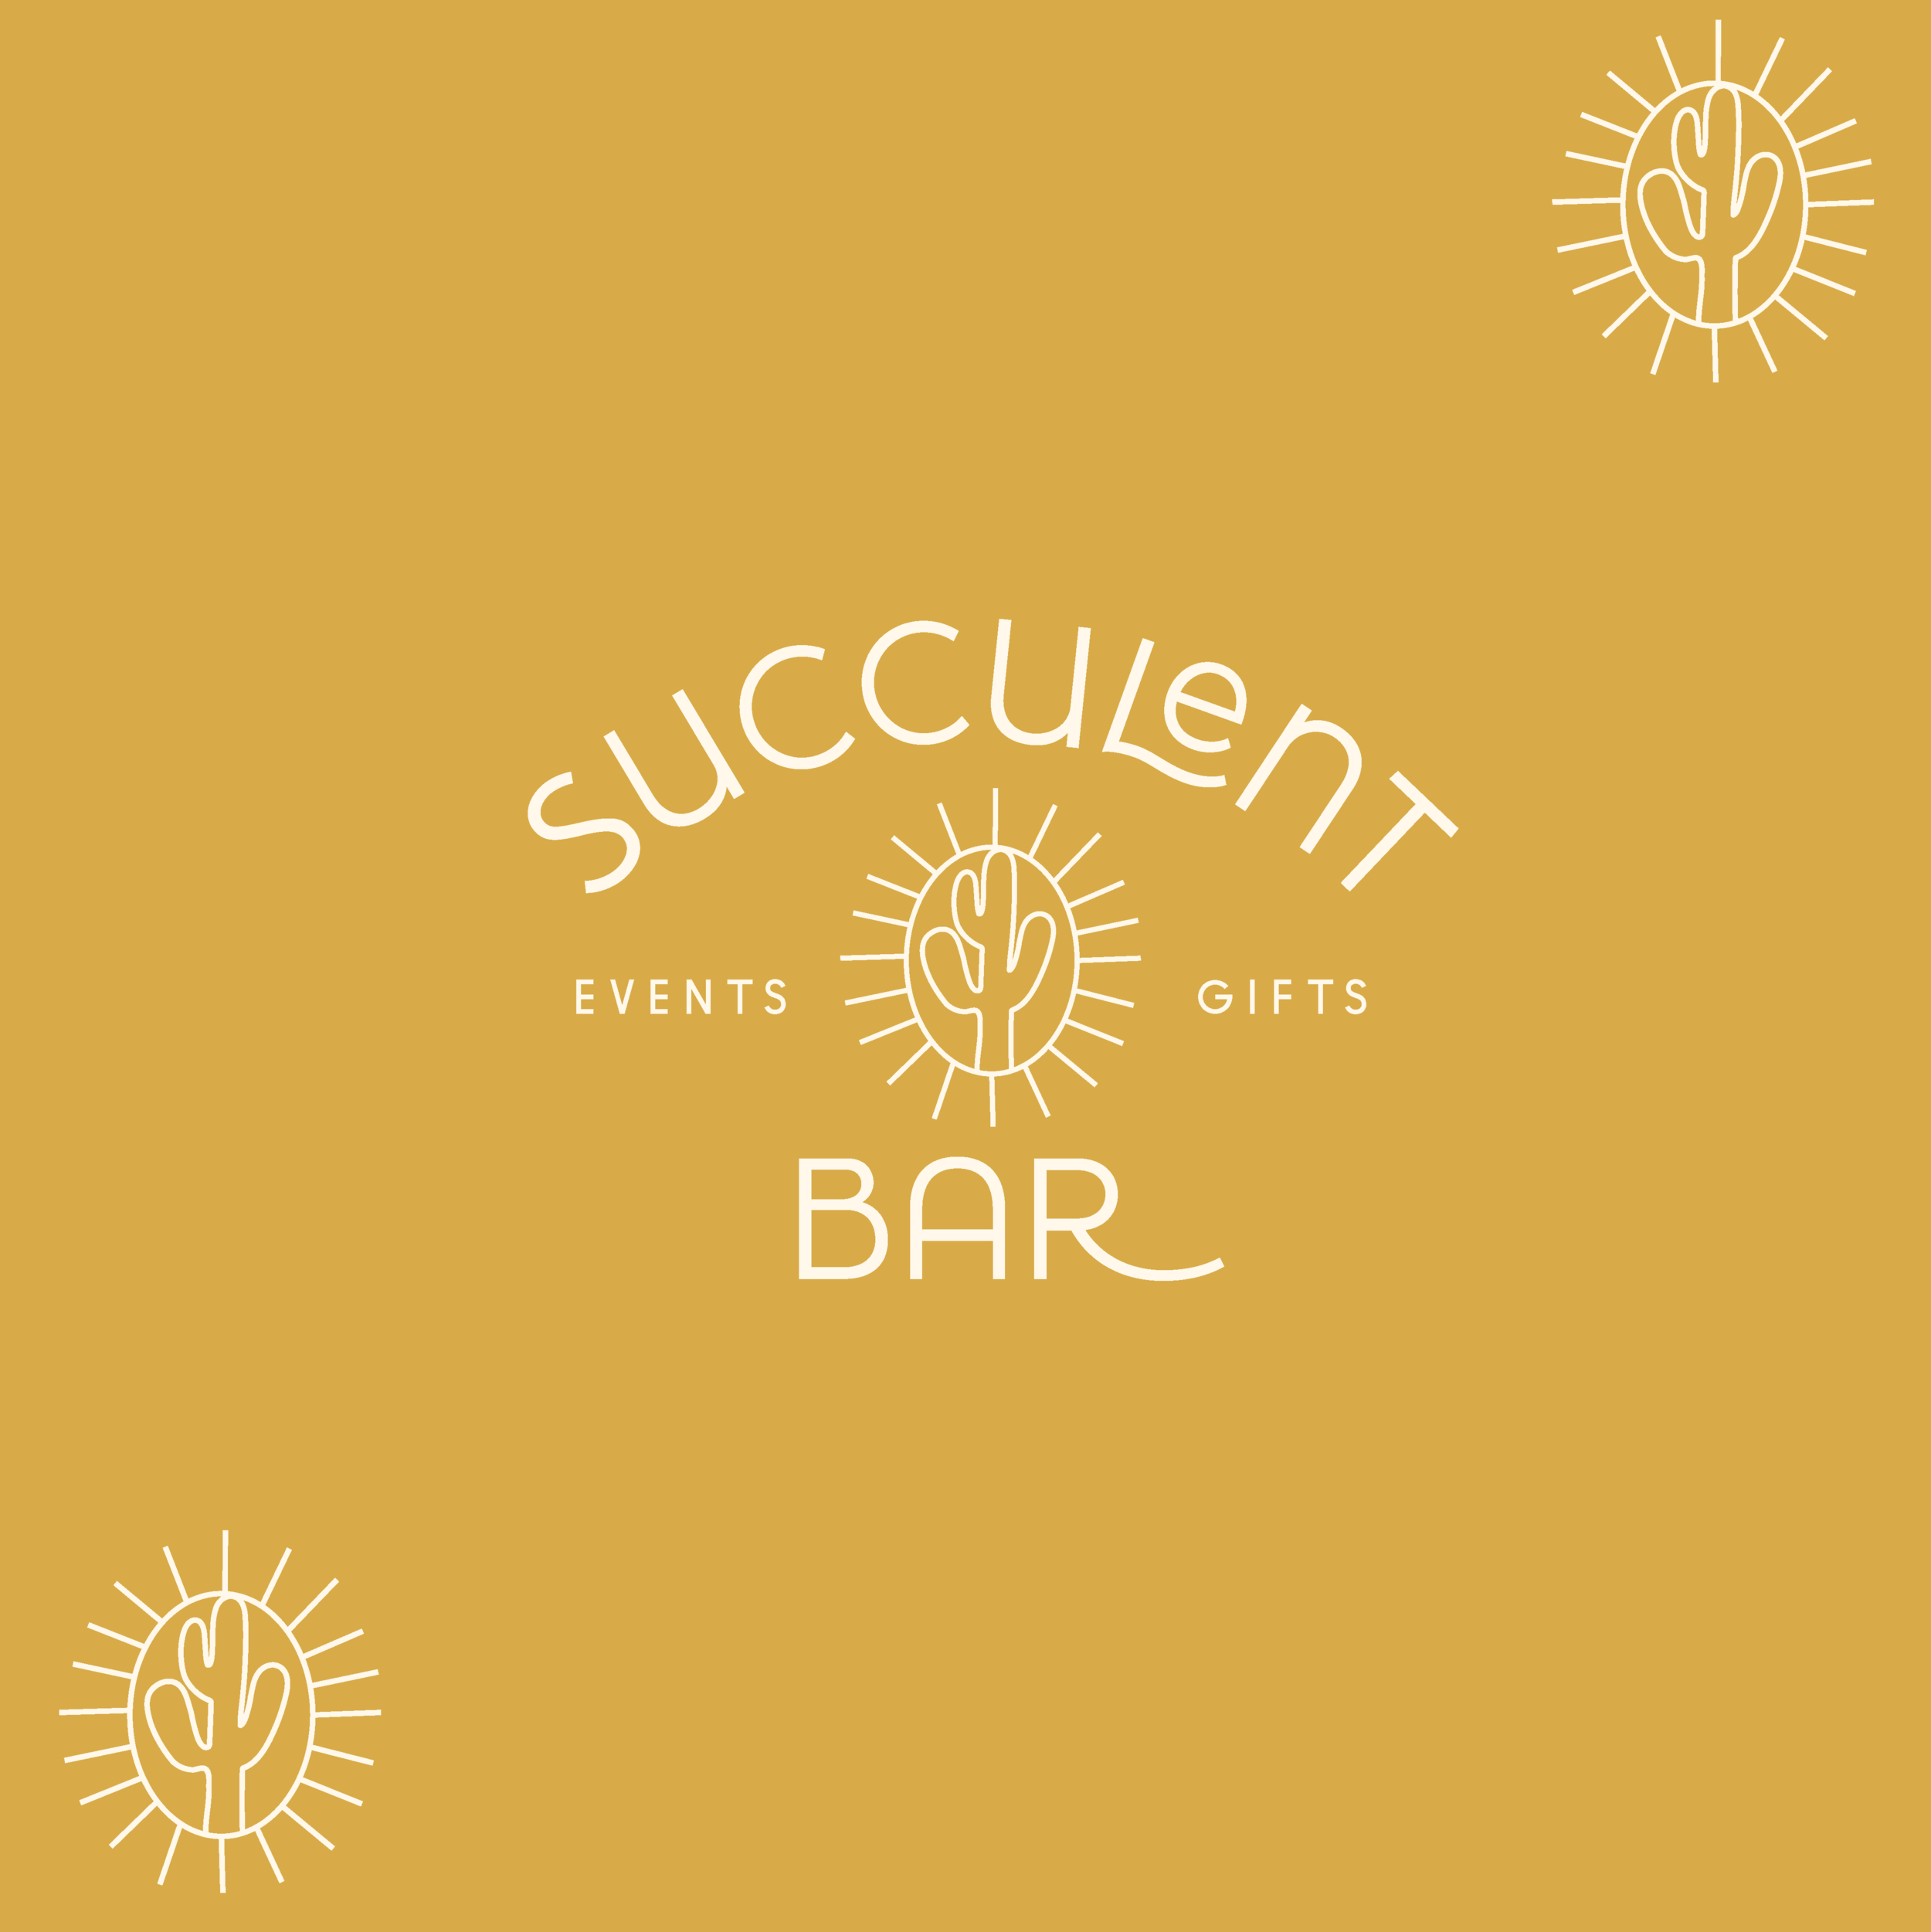 Succulent Bar Party and Event Favors Houston Texas Brand and Logo Design by Kindly by Kelsea